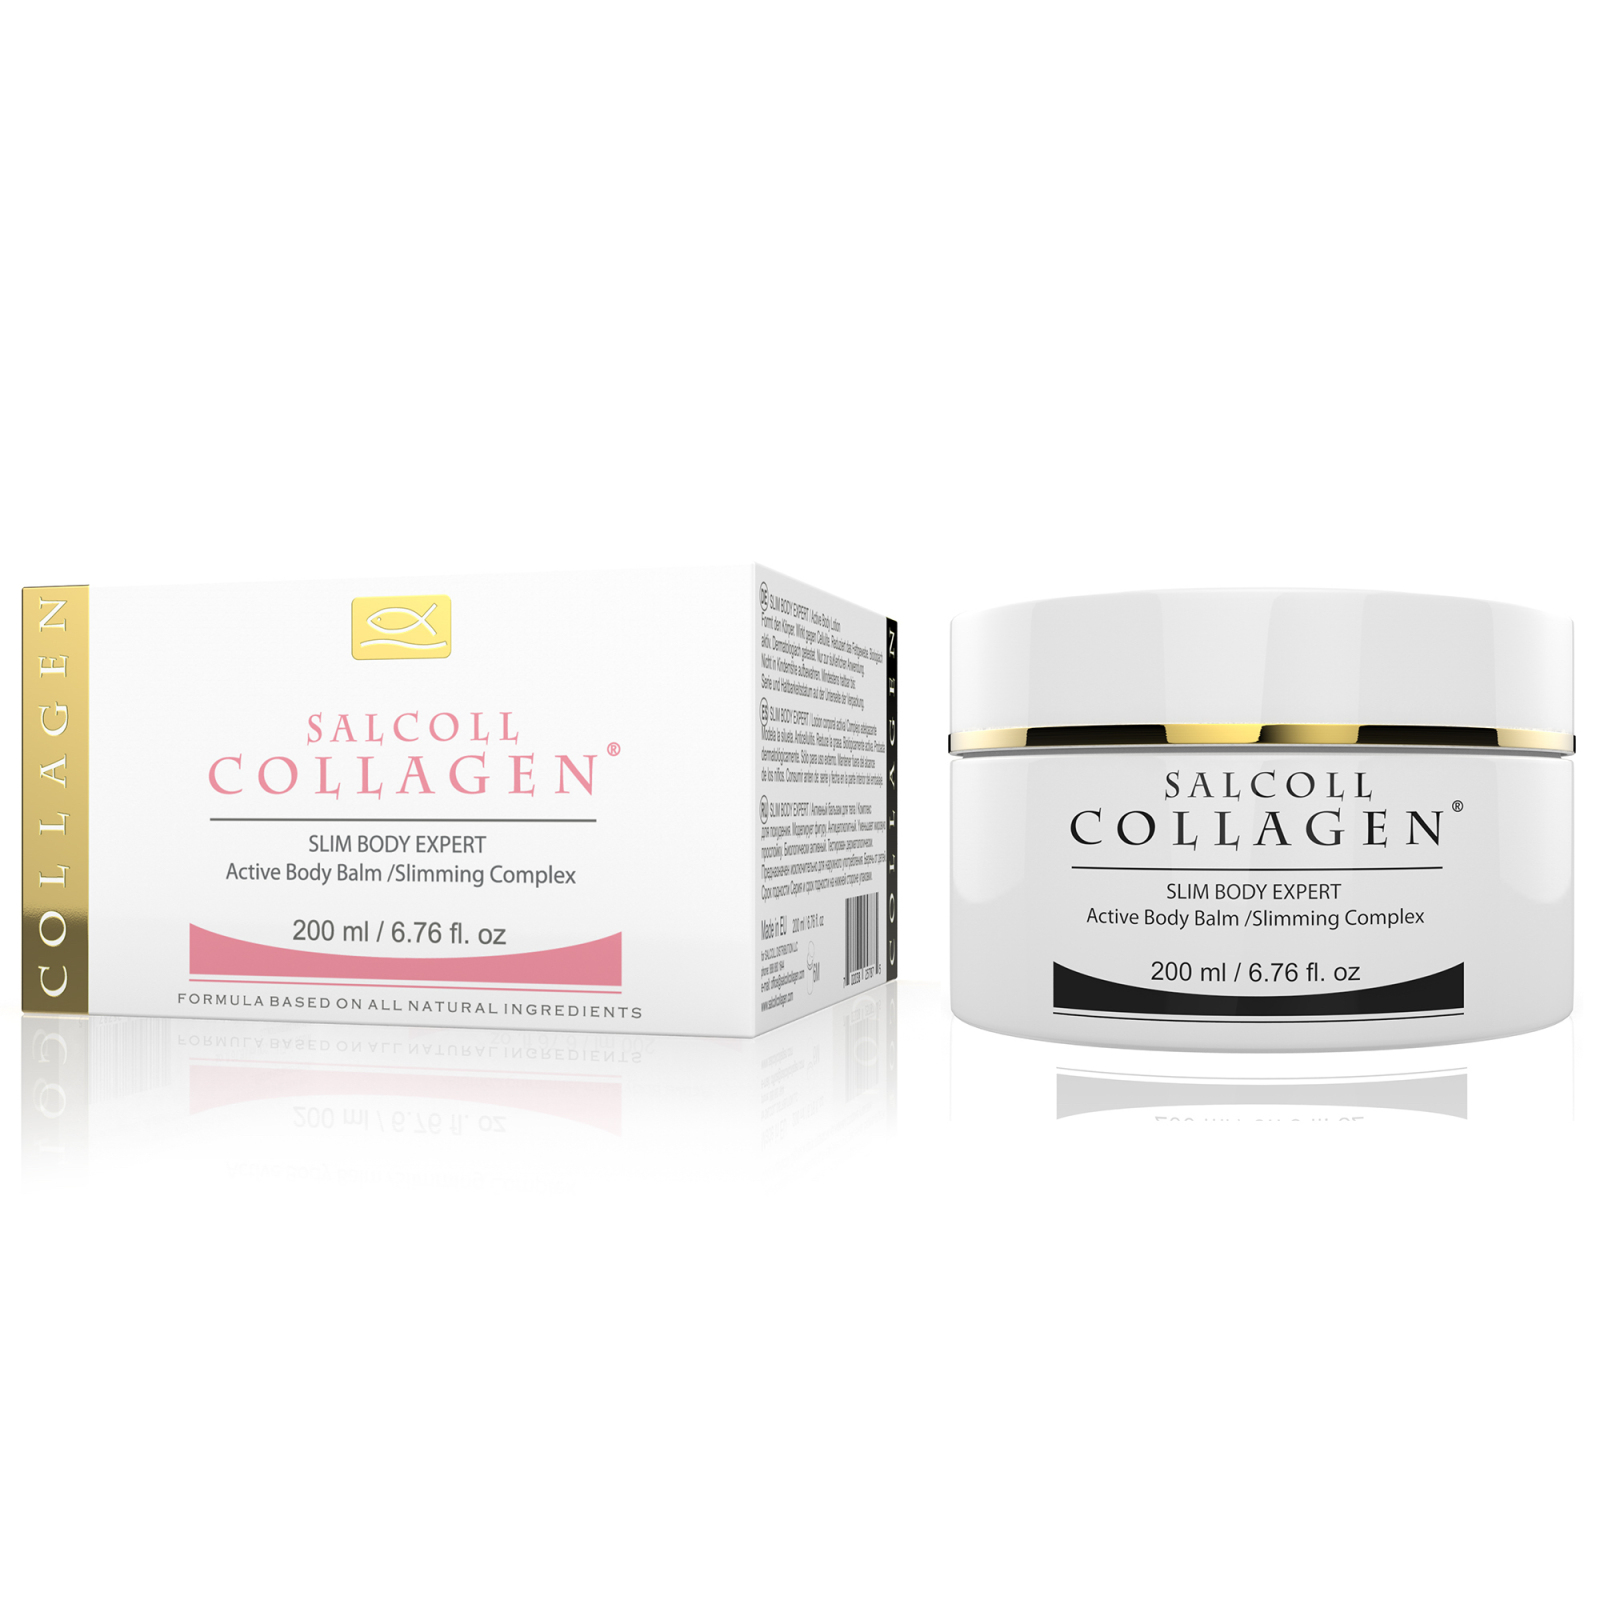 SALCOLL COLLAGEN Cellulite & Fat Reducer Cream - Anti-Cellulite Cream to Shape Body Contours - Tightens Saggy Skin, Helps Burn Fat, Restores Natural Skin Texture Post Pregnancy or Weight Loss - 200 ml